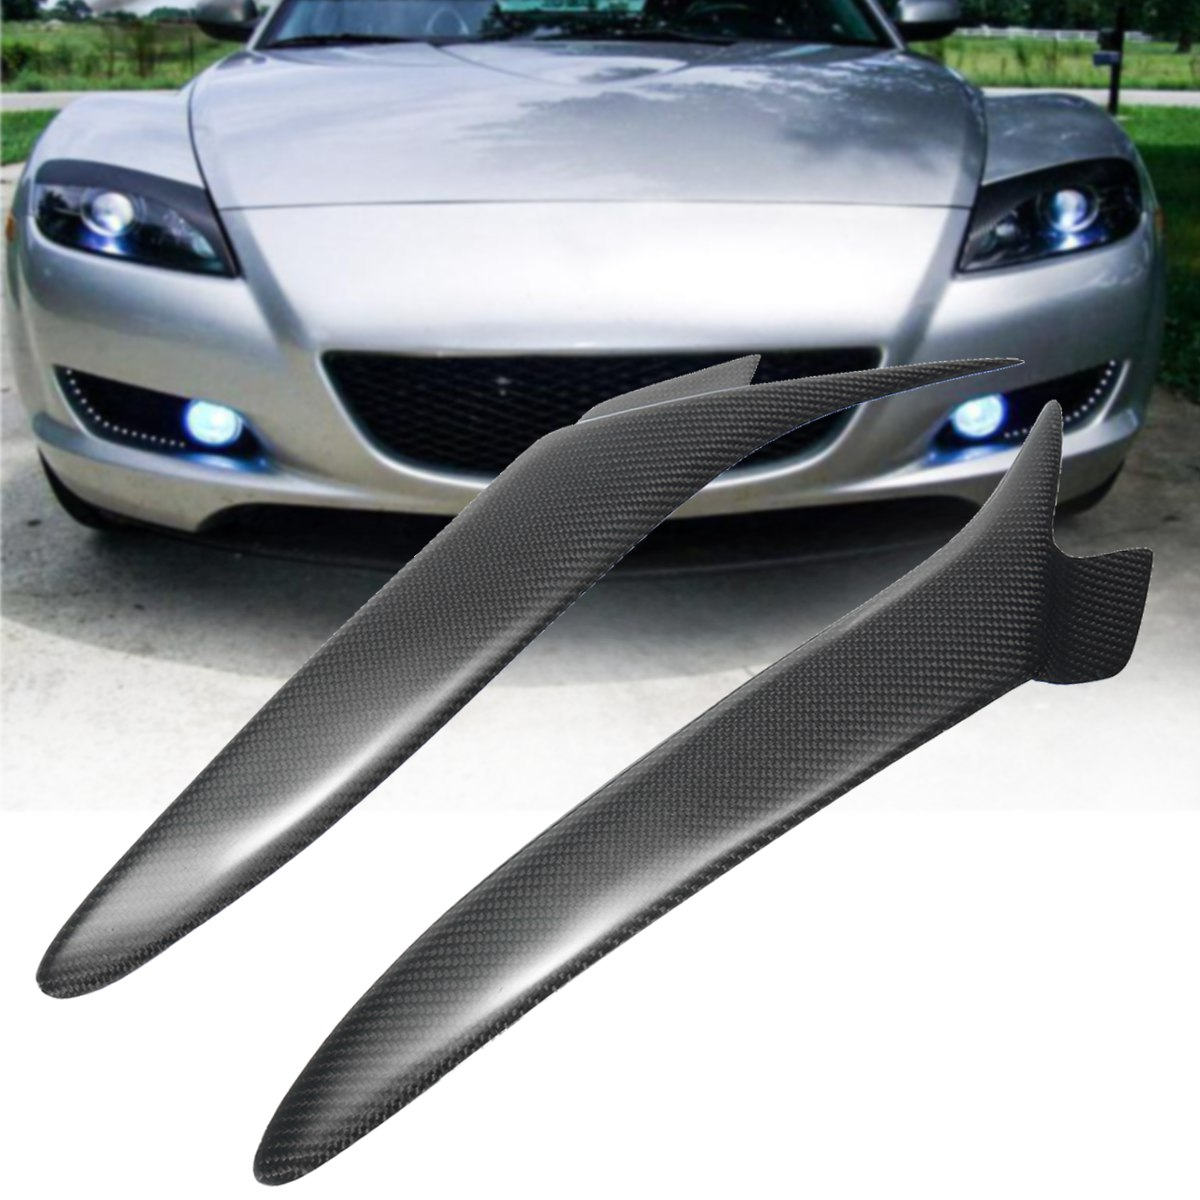 Car Front Headlight Eyebrows Eyelids Cover Carbon Fiber Pattern for Mazda RX 8 RX8 2004-2008 Car Styling Exterior AccessoriesCar Front Headlight Eyebrows Eyelids Cover Carbon Fiber Pattern for Mazda RX 8 RX8 2004-2008 Car Styling Exterior Accessories